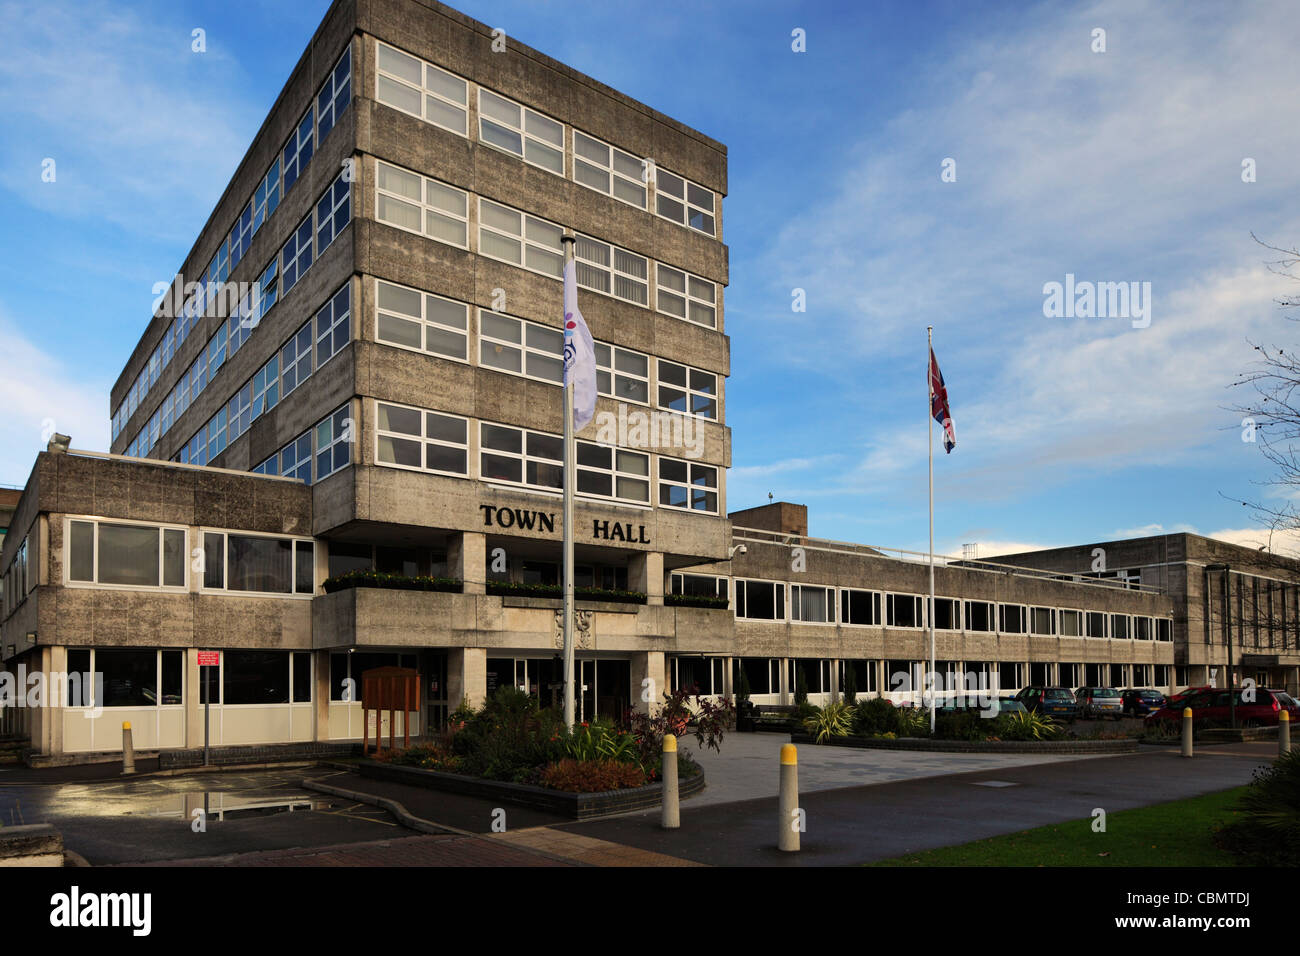 Crawley Town Hall. - Stock Image